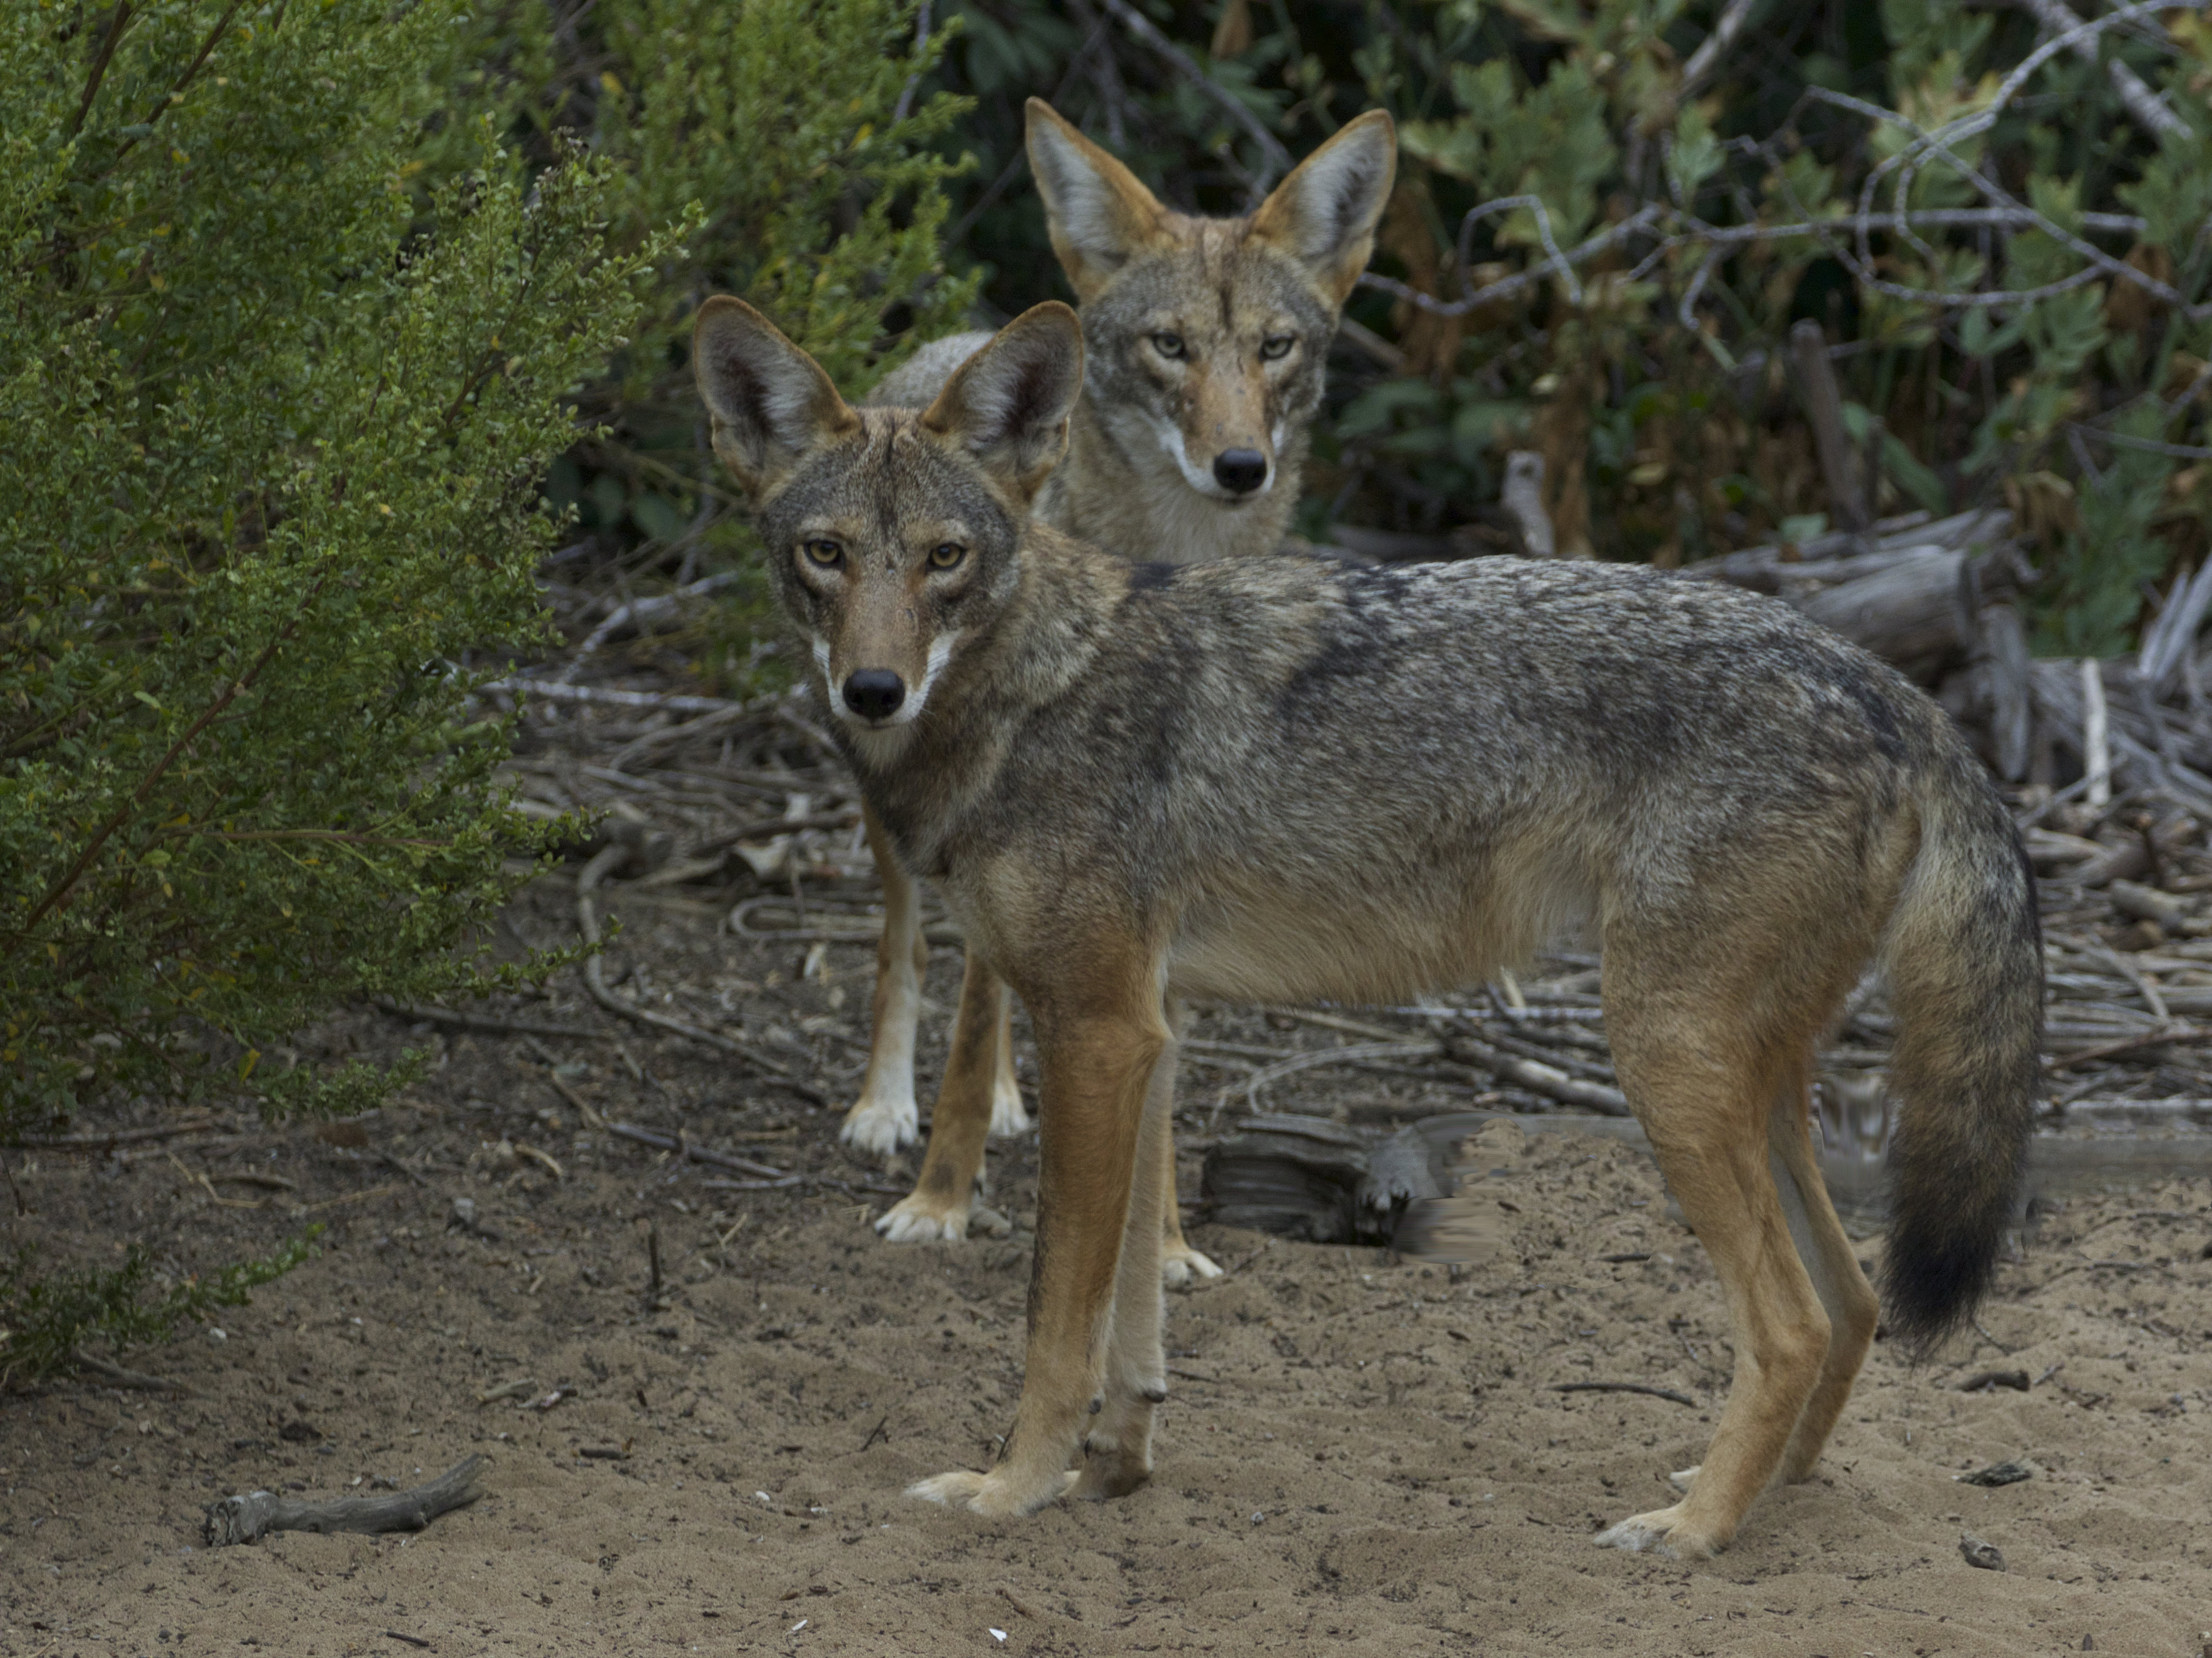 60034 download wallpaper Animals, Coyotes, Muzzle, Predator, Animal, Sight, Opinion screensavers and pictures for free